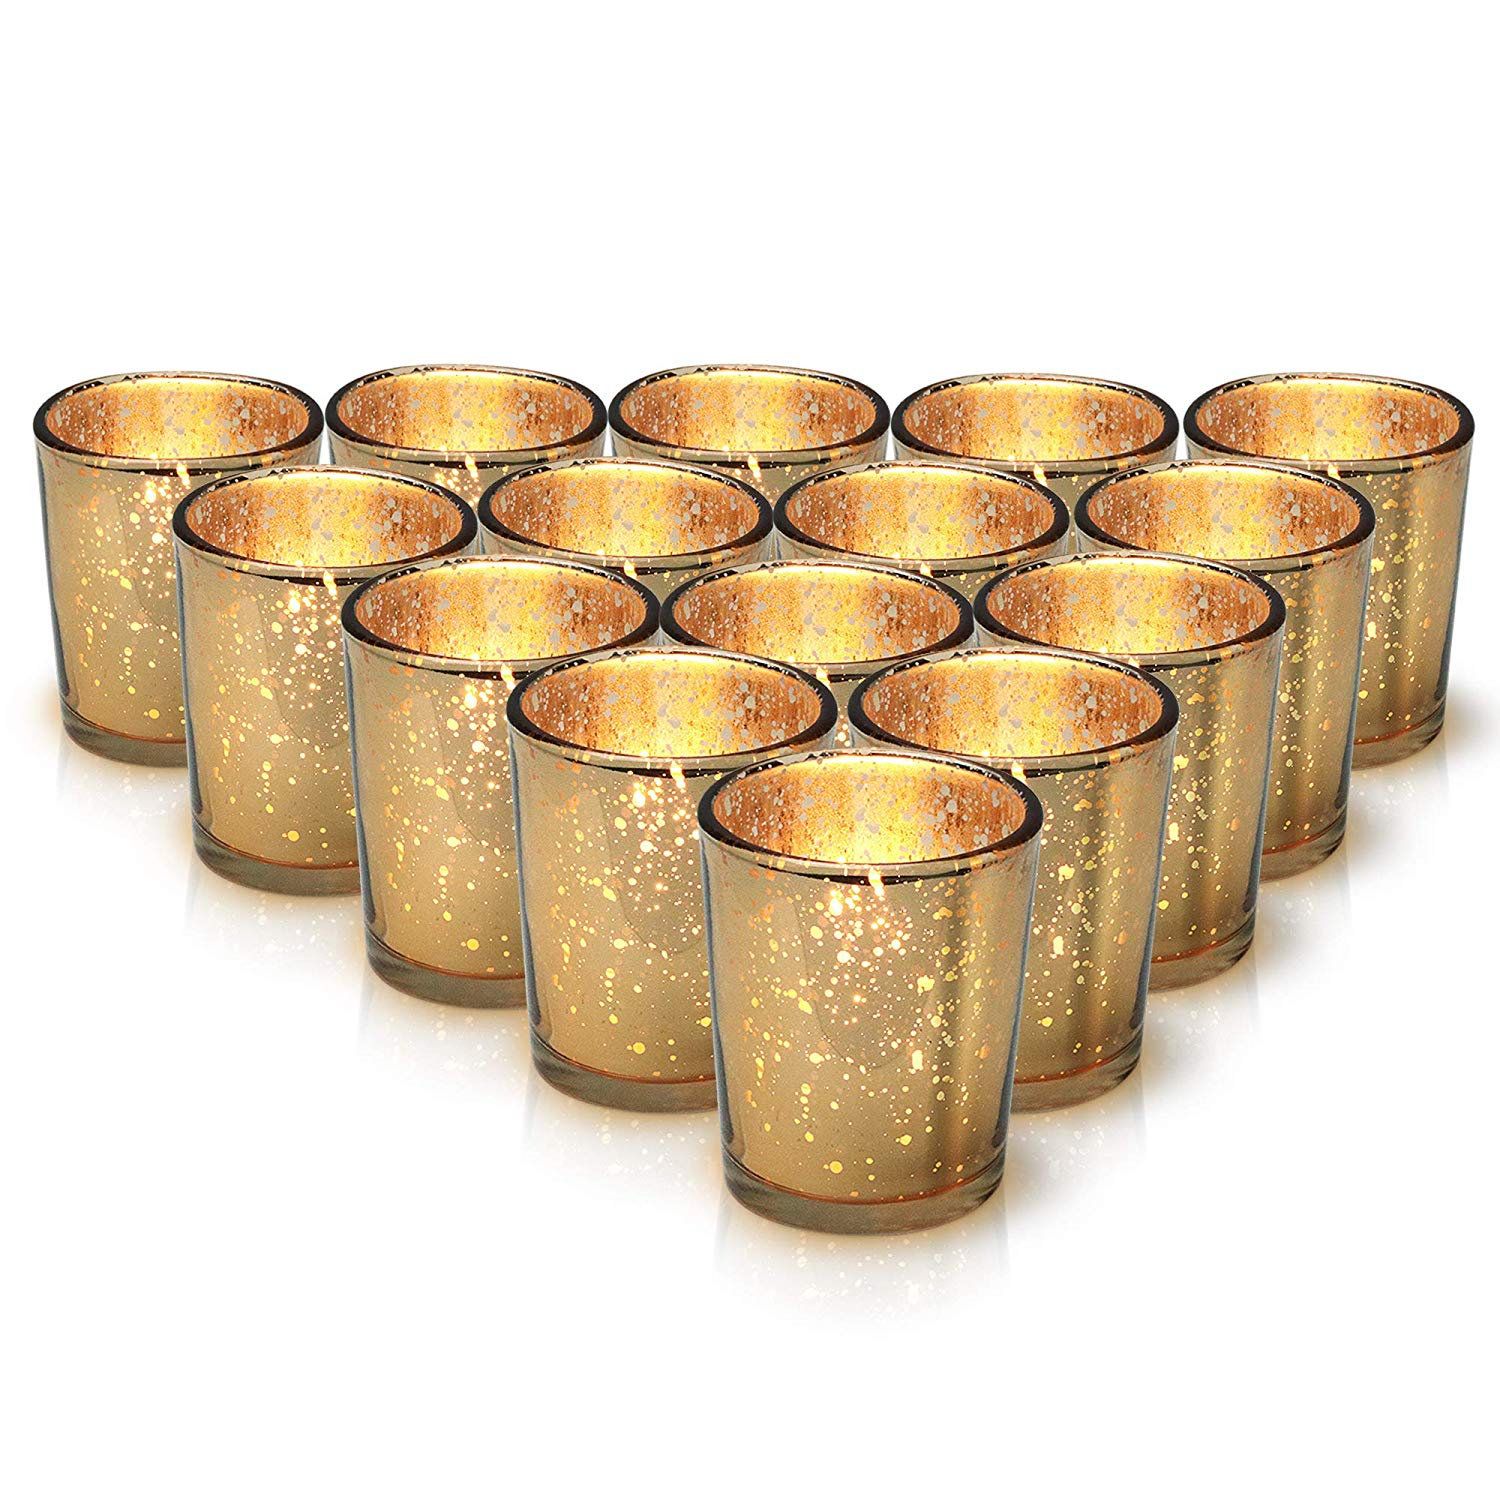 30 Gold Mercury Glass Votive Candle Holders